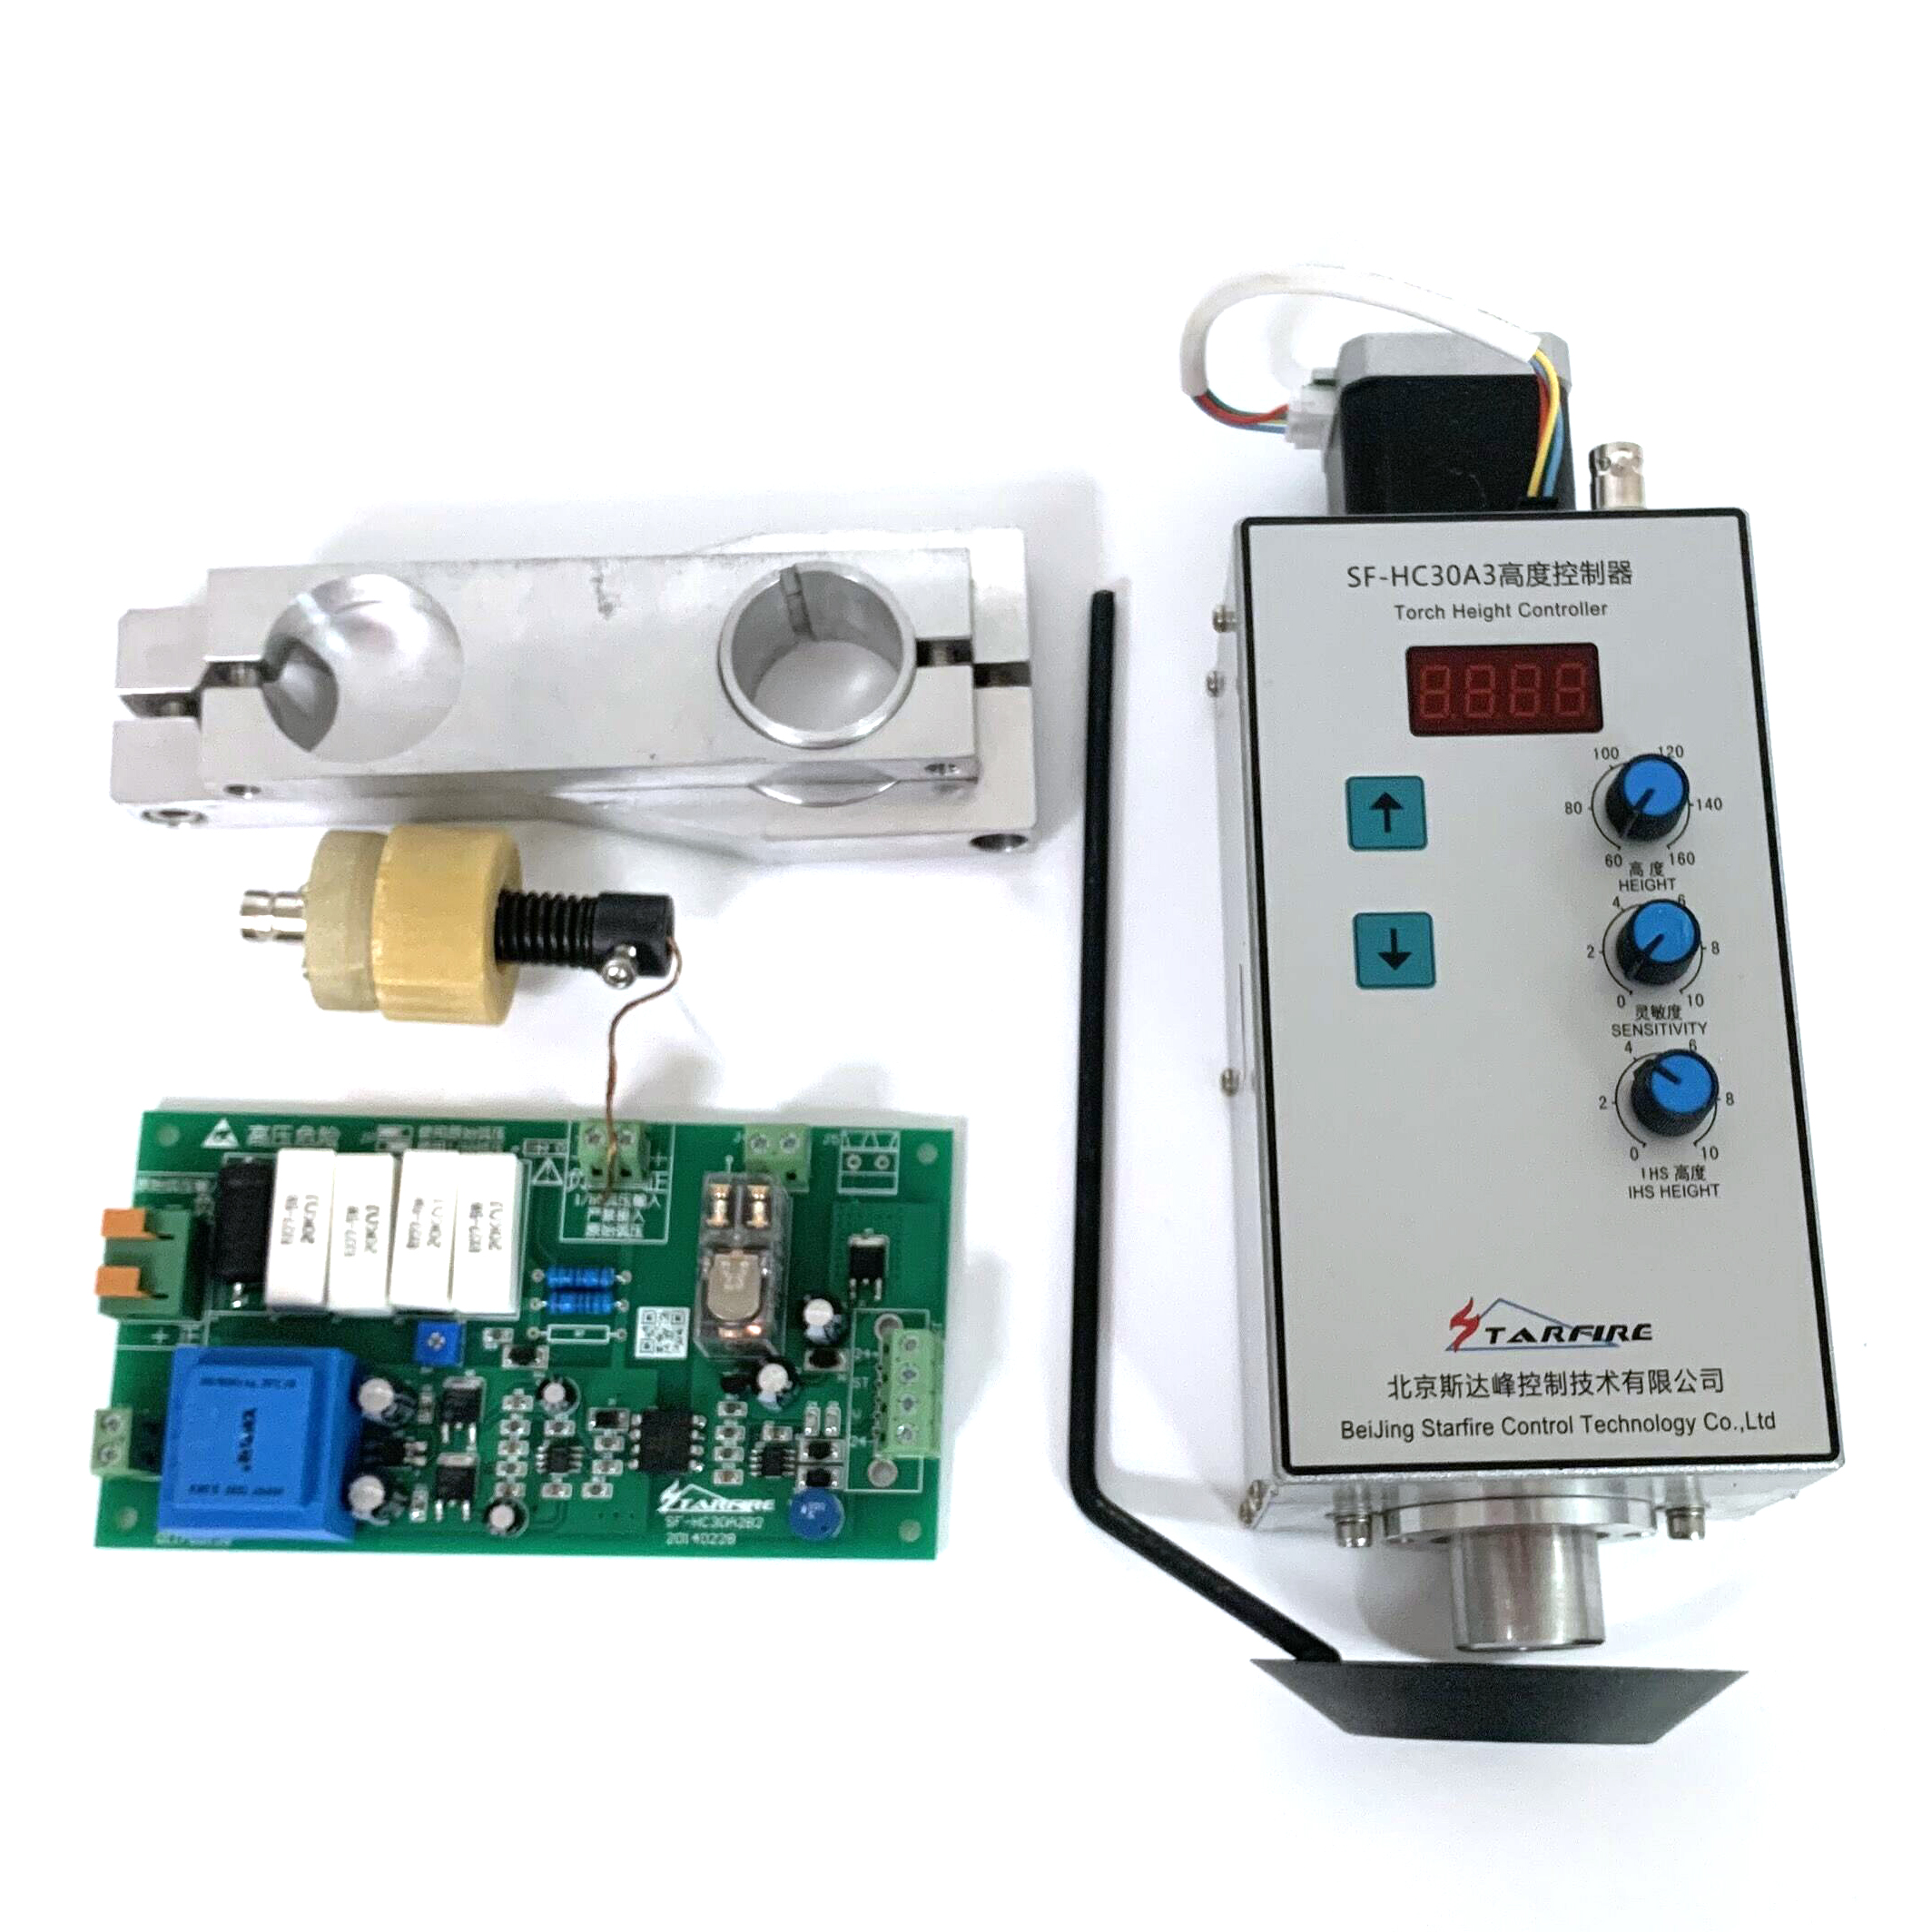 Automatic arc and cap torch height controller SF-HC30A  for plasma cutter machines and flame cutters THC